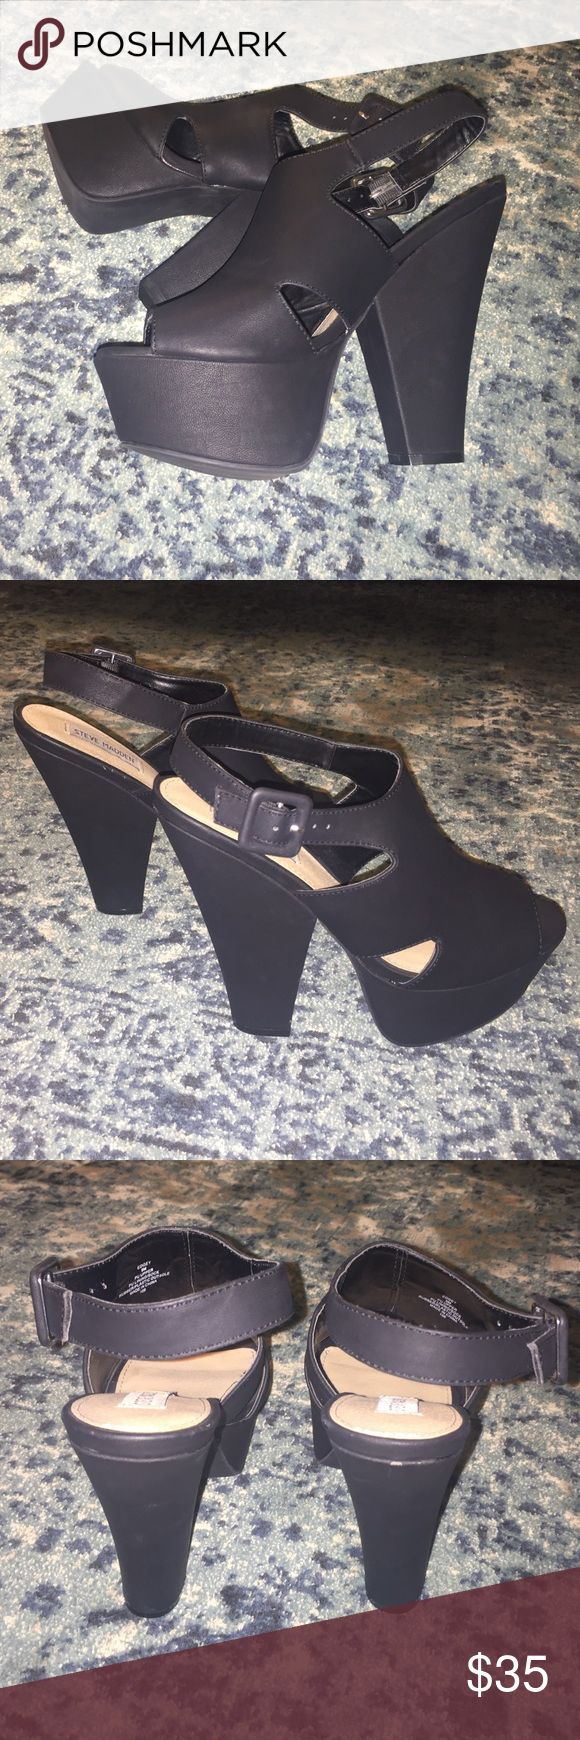 Steve Madden Edgey Platform Sandal Excellent condition, never worn.  Minor blemishes due to storage.  Size 9M - I am usually an 8 - 8.5 and these fit perfectly. Steve Madden Shoes Platforms